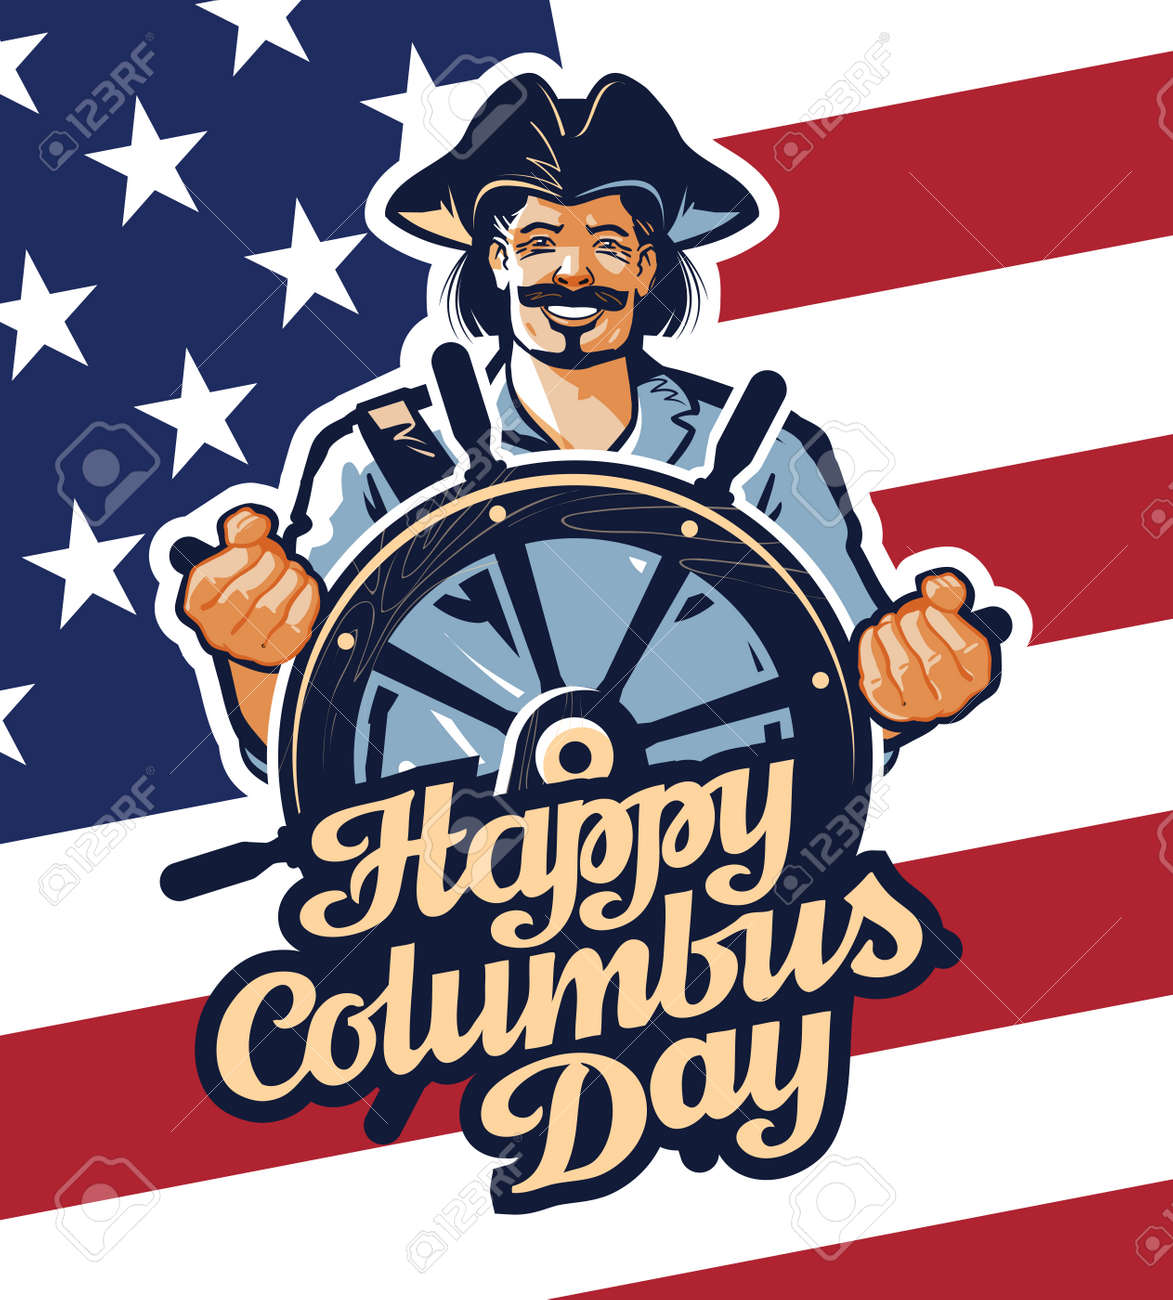 hight resolution of christopher columbus on american flag background stock vector 54649506